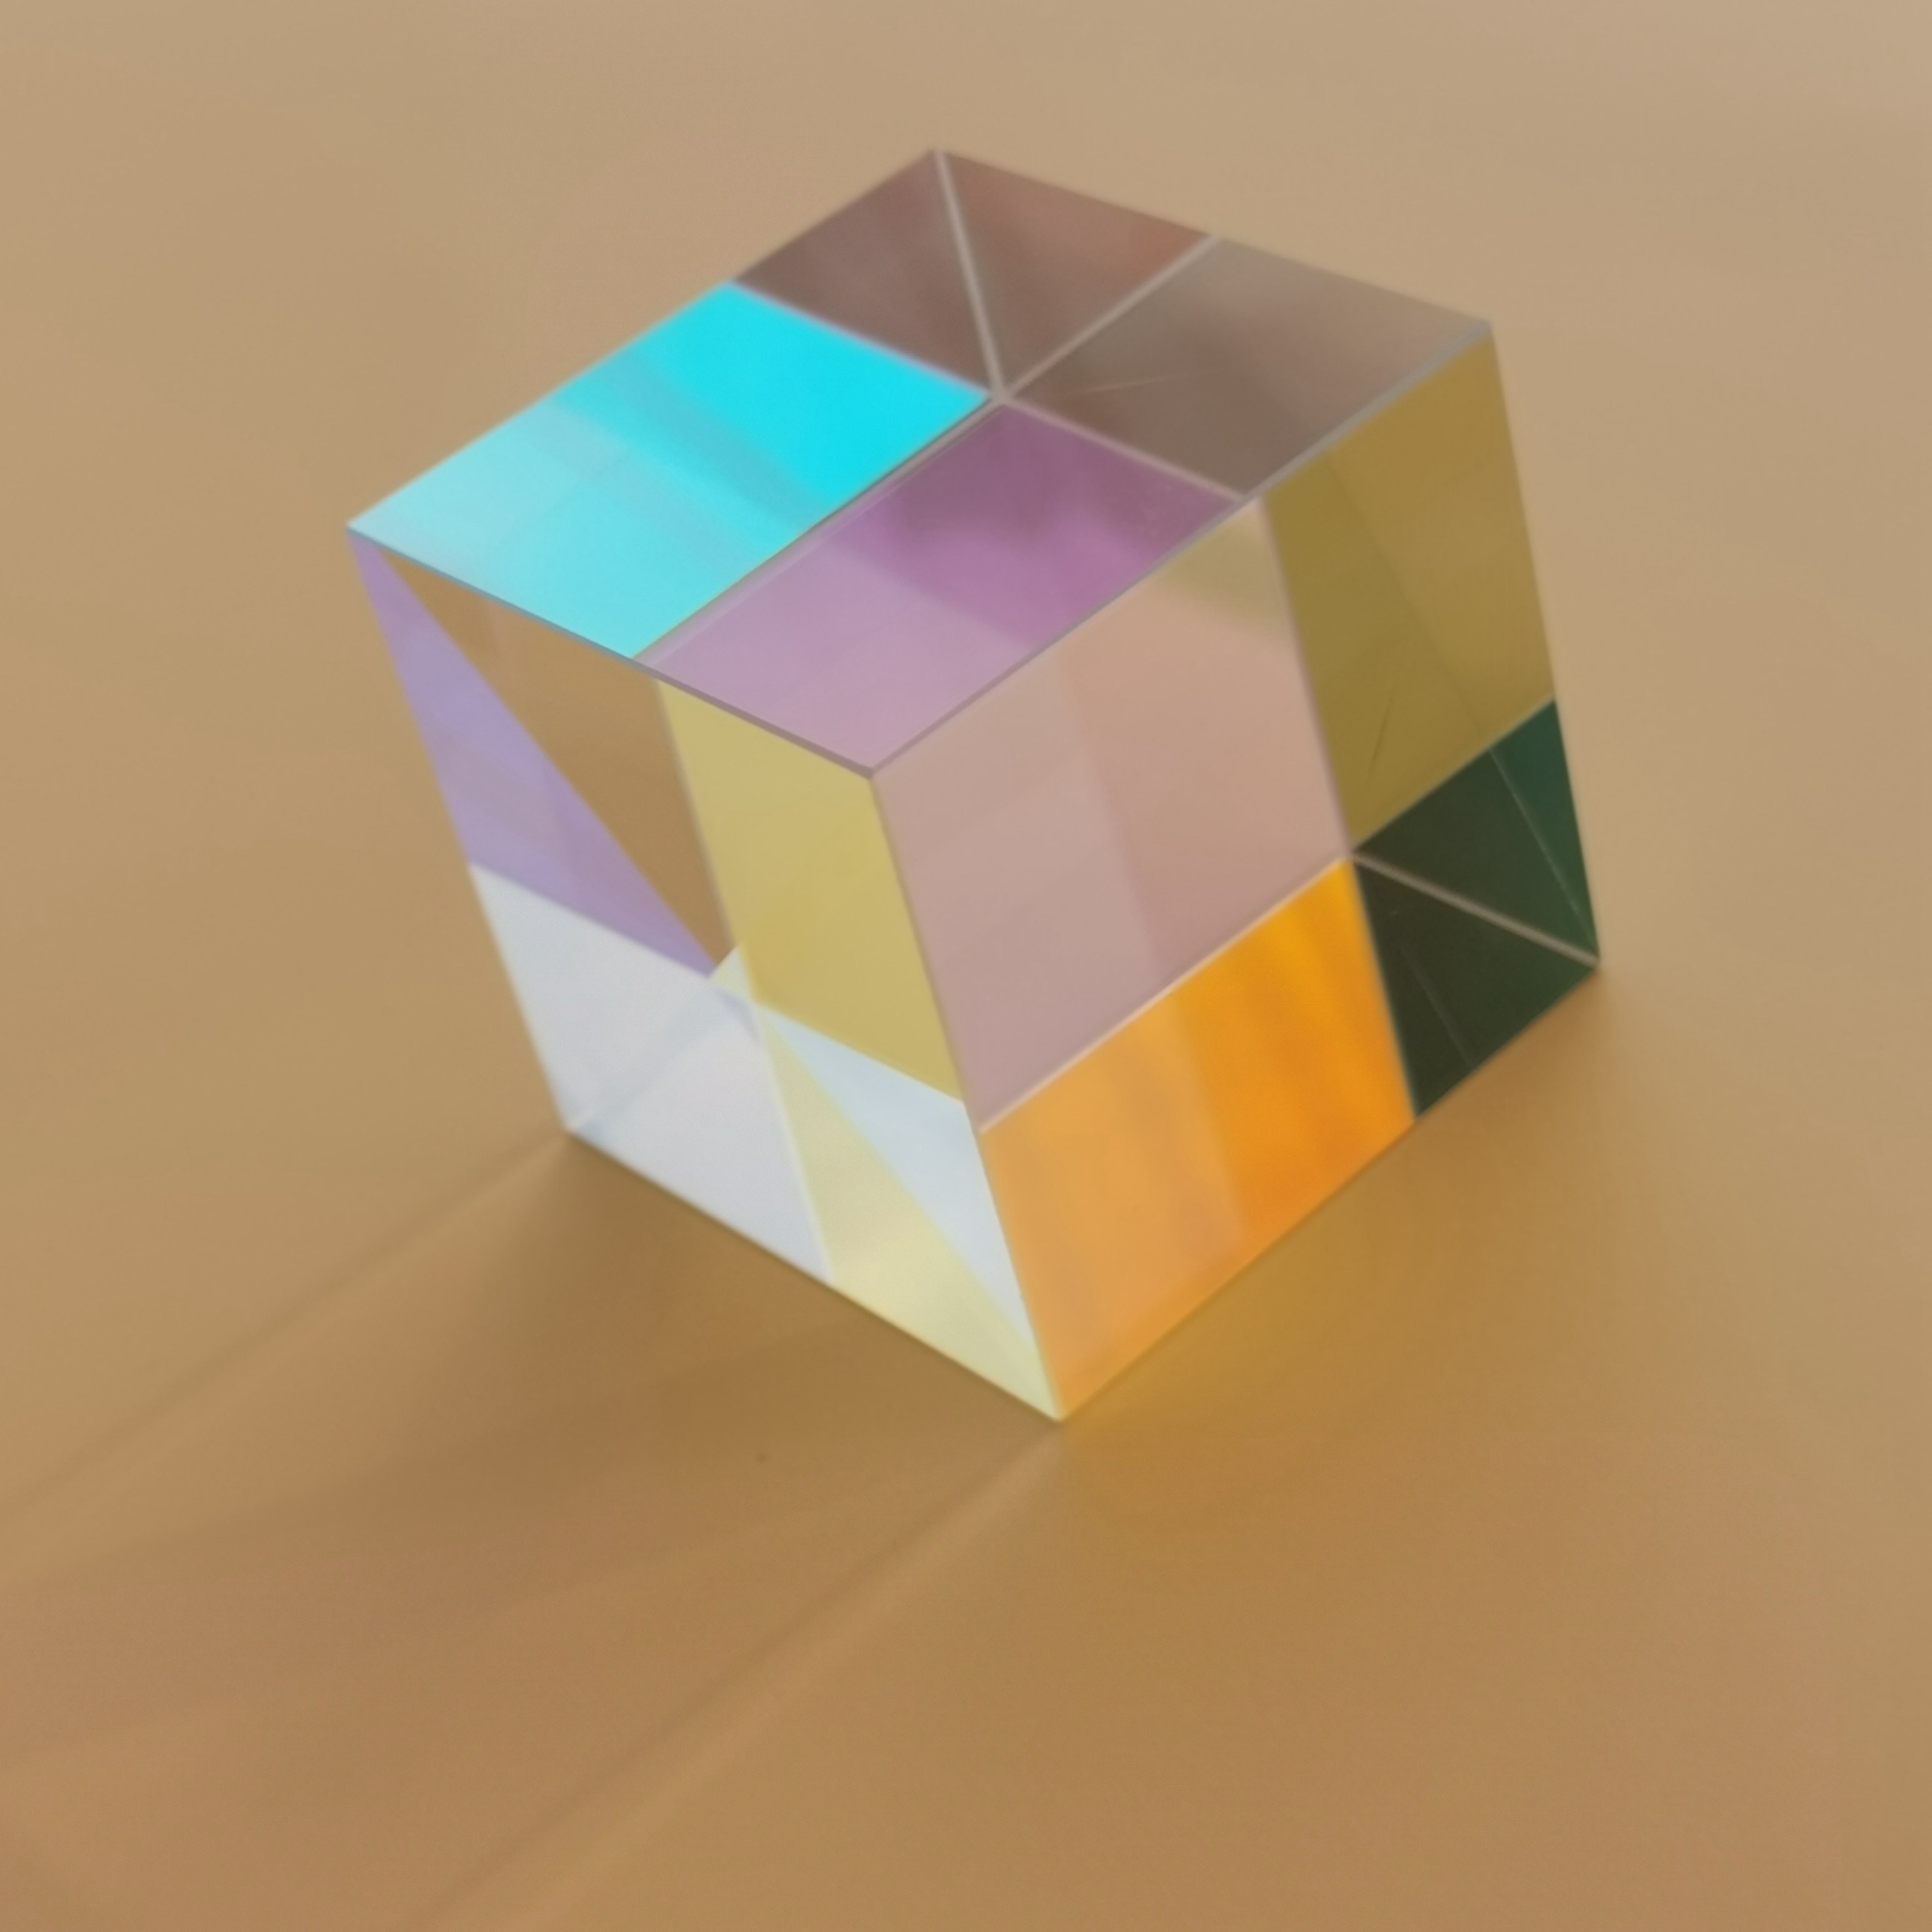 50*50*50mm Color Prism Six Bright Large Light Cube Creative Gifts Optical Experiments For Children Science